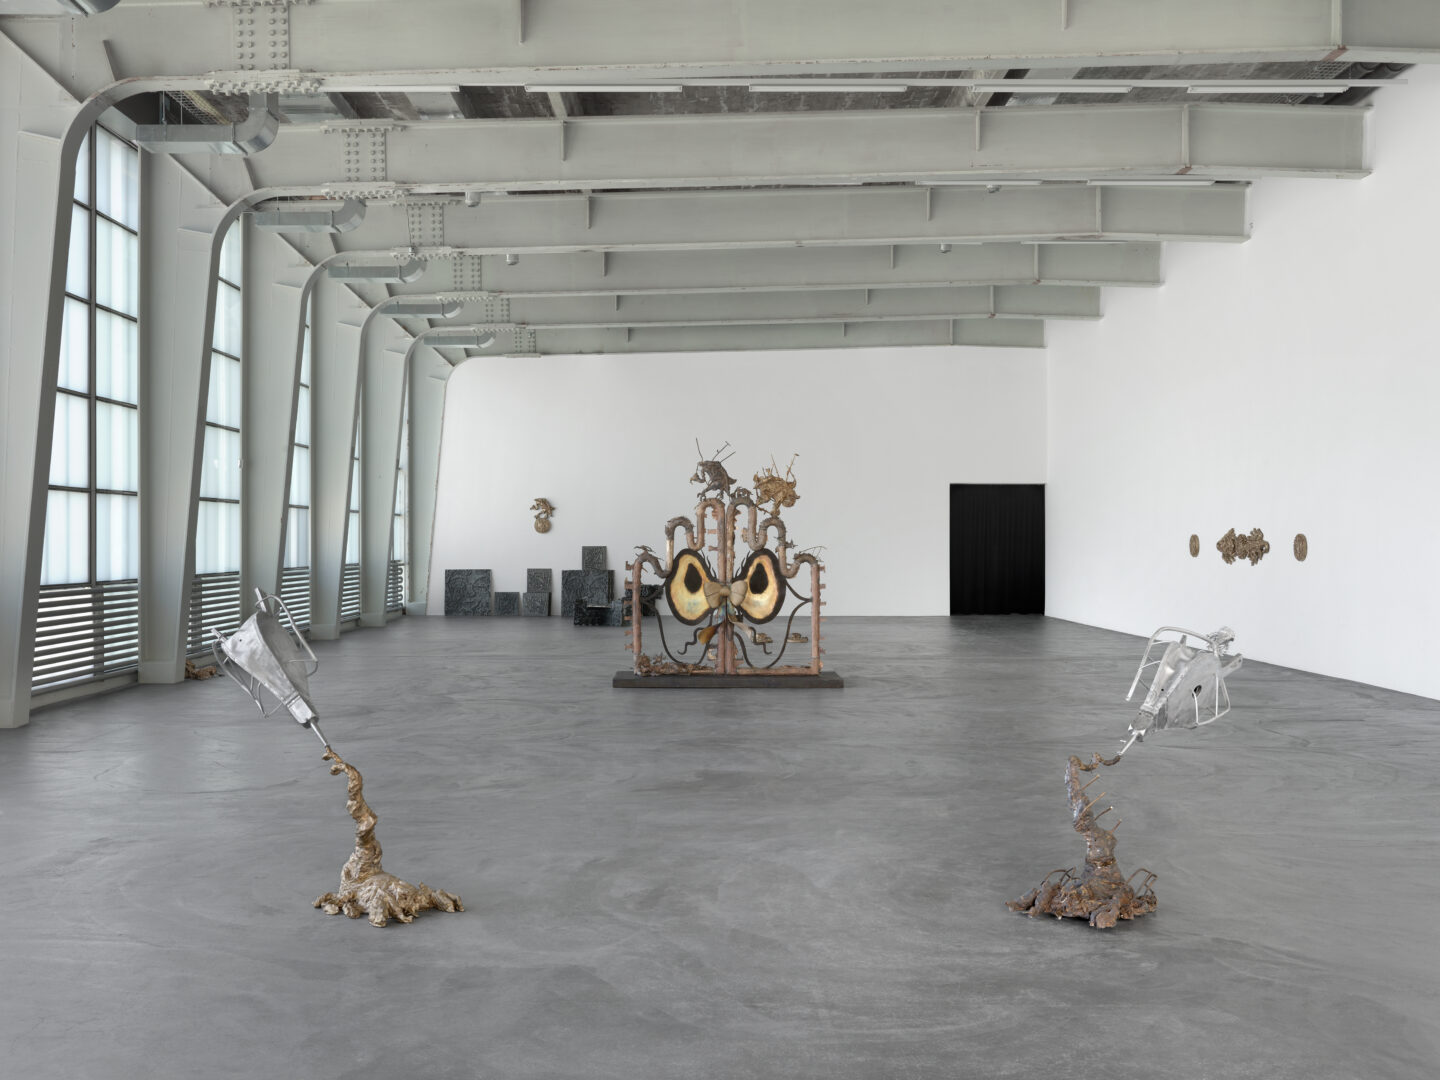 Exhibition View Ida Ekblad Soloshow «FRA ÅRE TIL OVN» at Kunsthalle Zürich,  Zurich, 2019 / © Photo: Annik Wetter / Courtesy: the artist and Kunsthalle Zürich